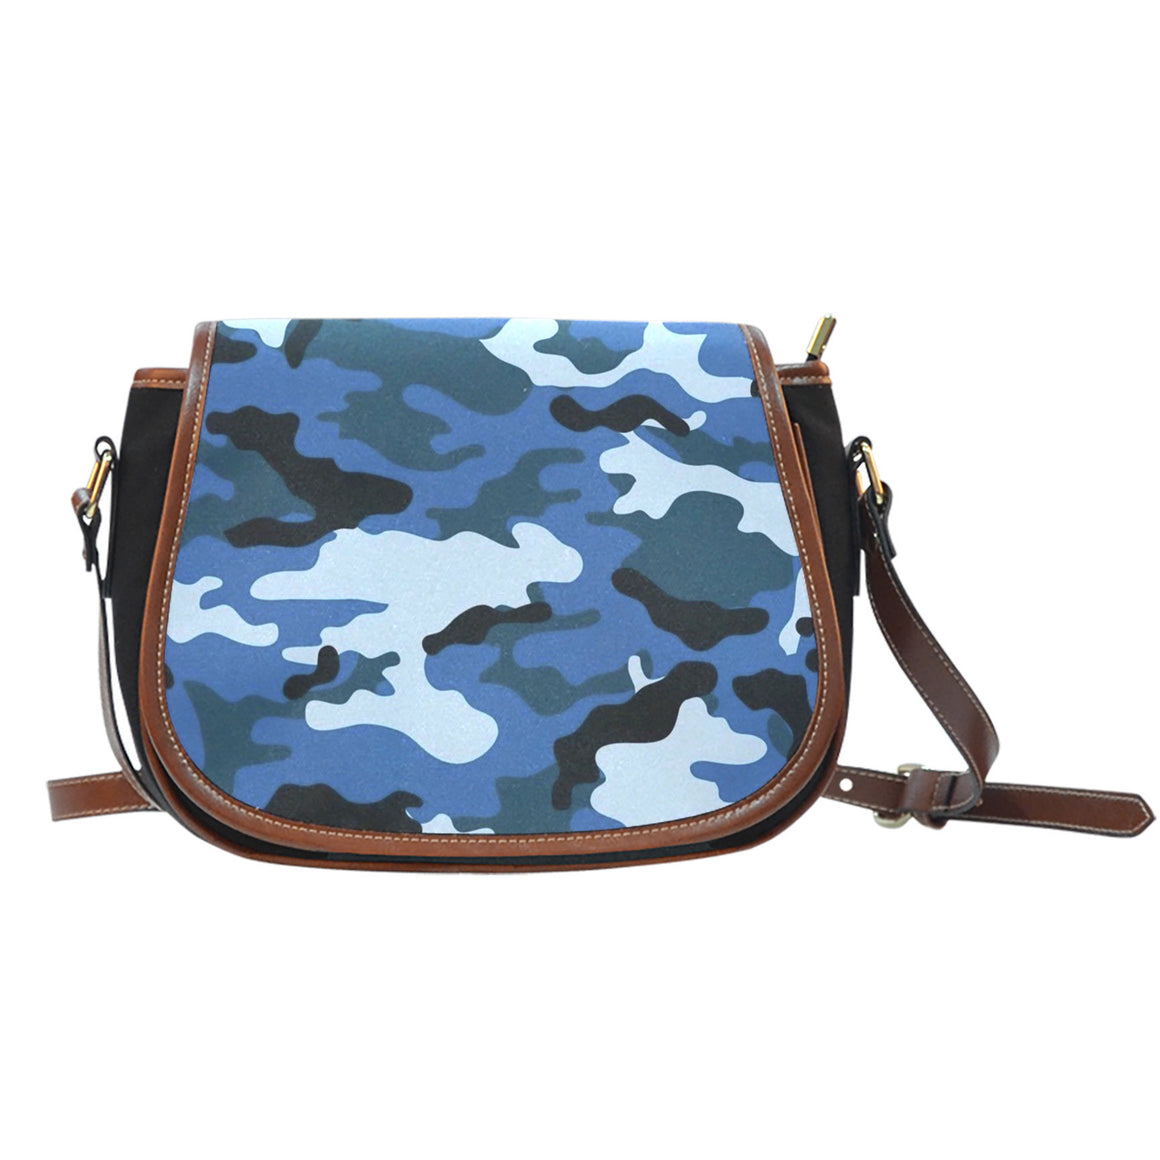 Blue Camouflage Leather Trim Saddle Bag